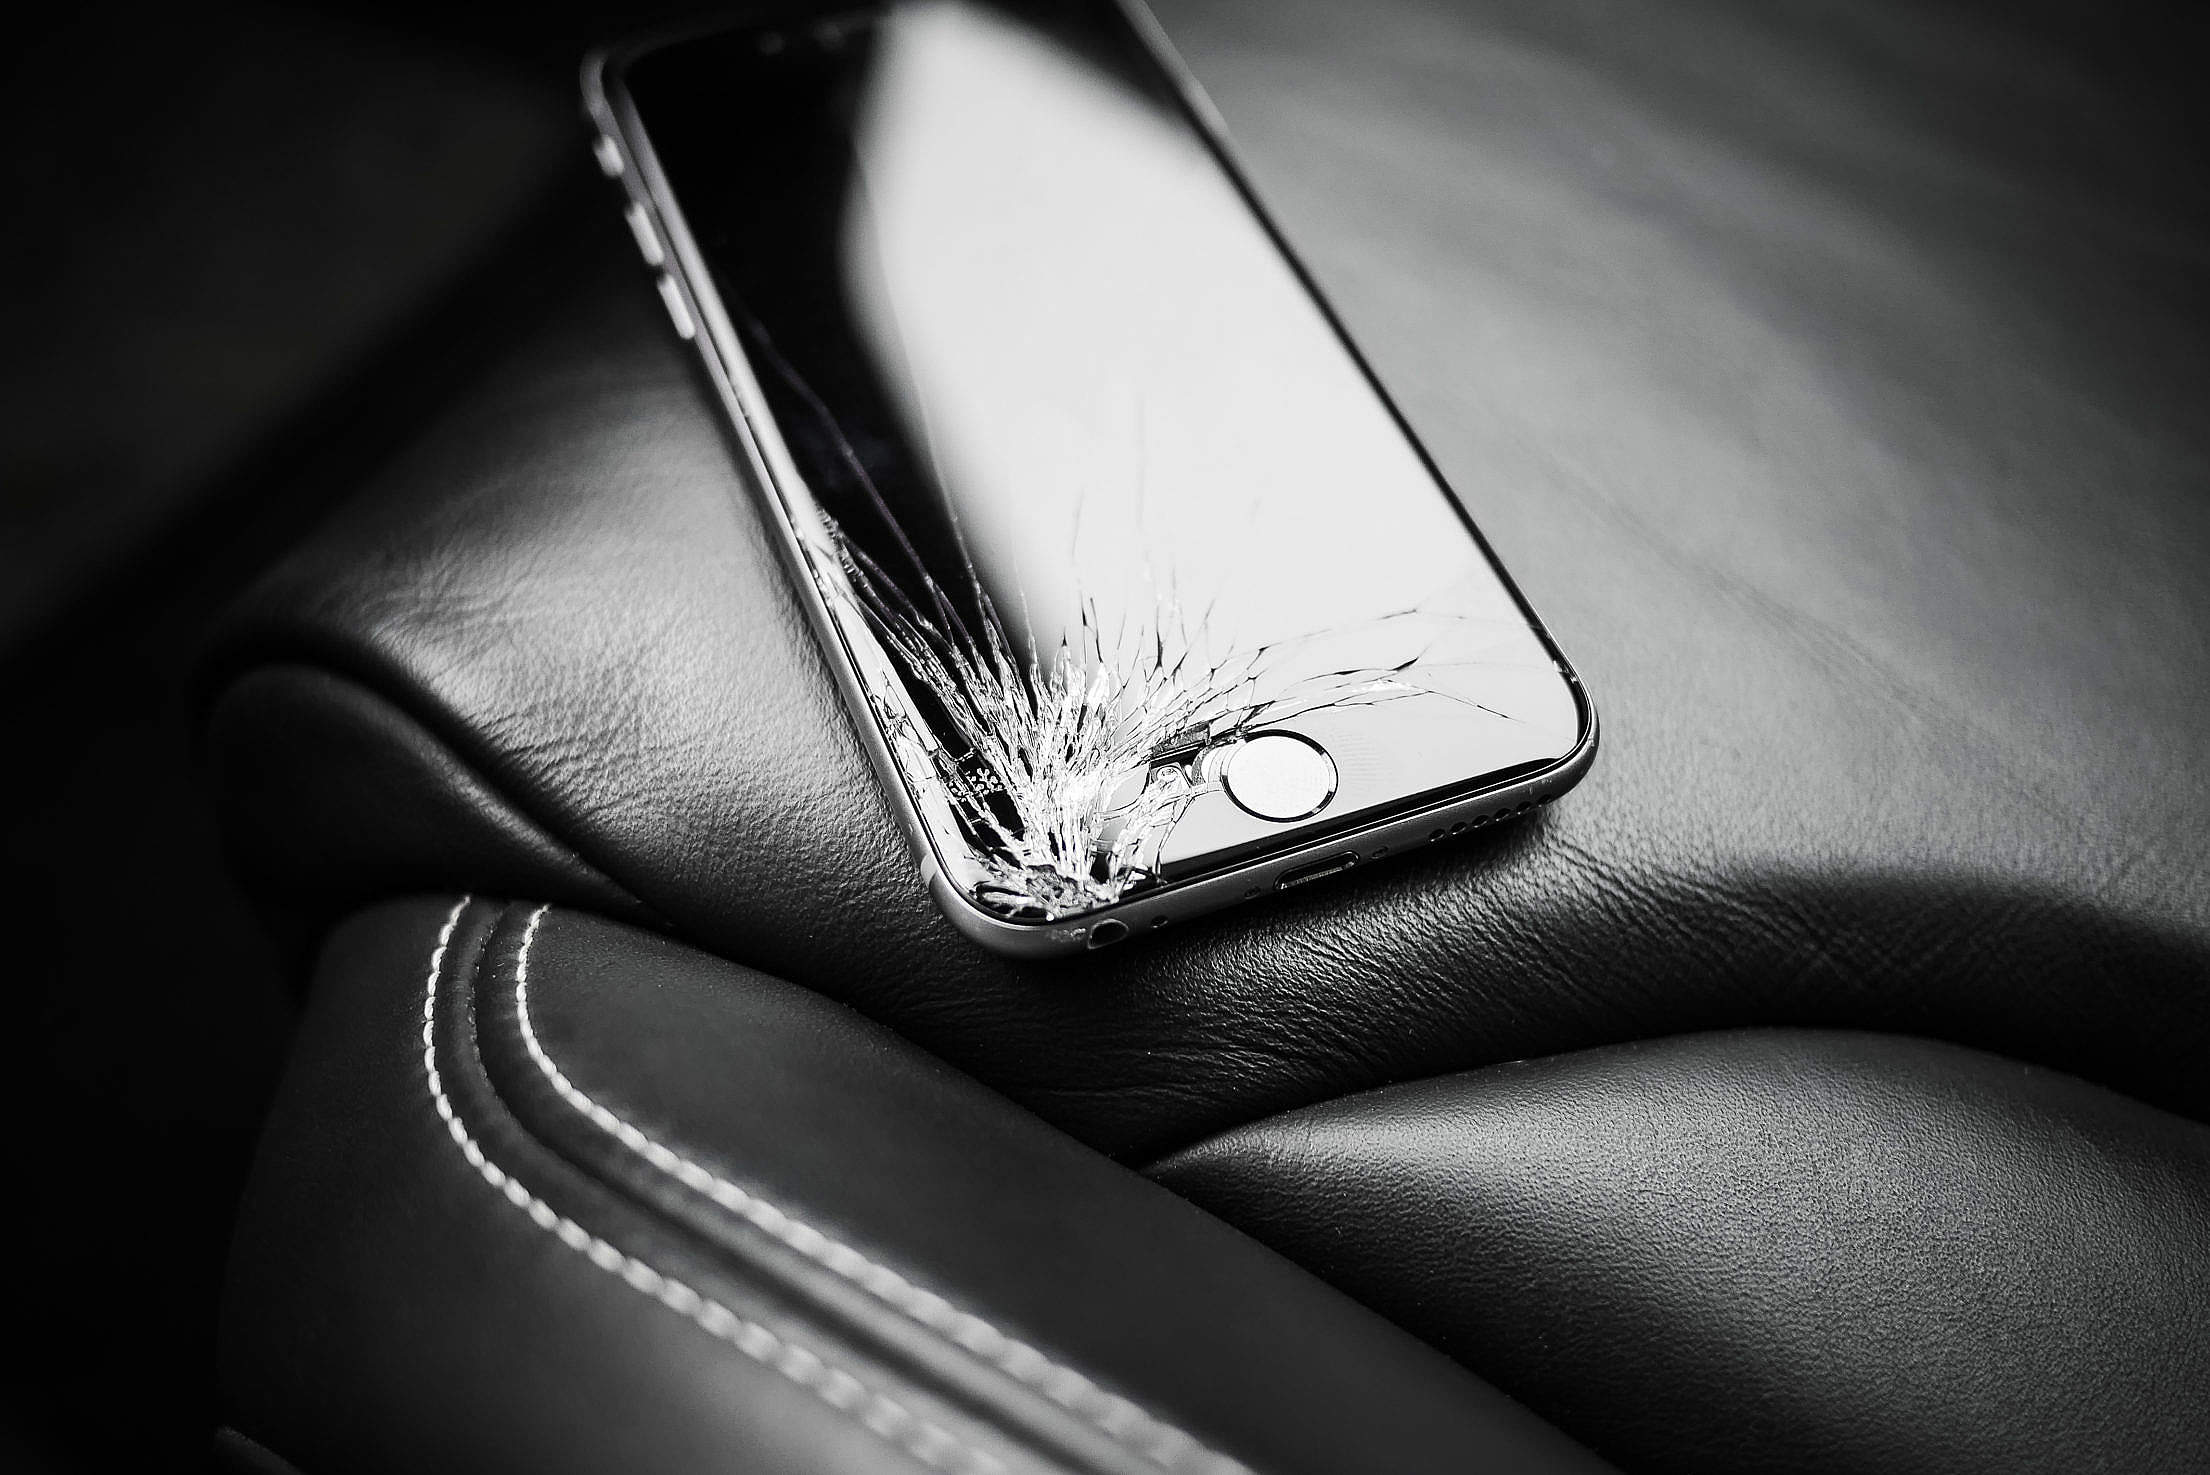 Download Dropped iPhone 6 with Cracked Screen on Car Seat Free Stock Photo